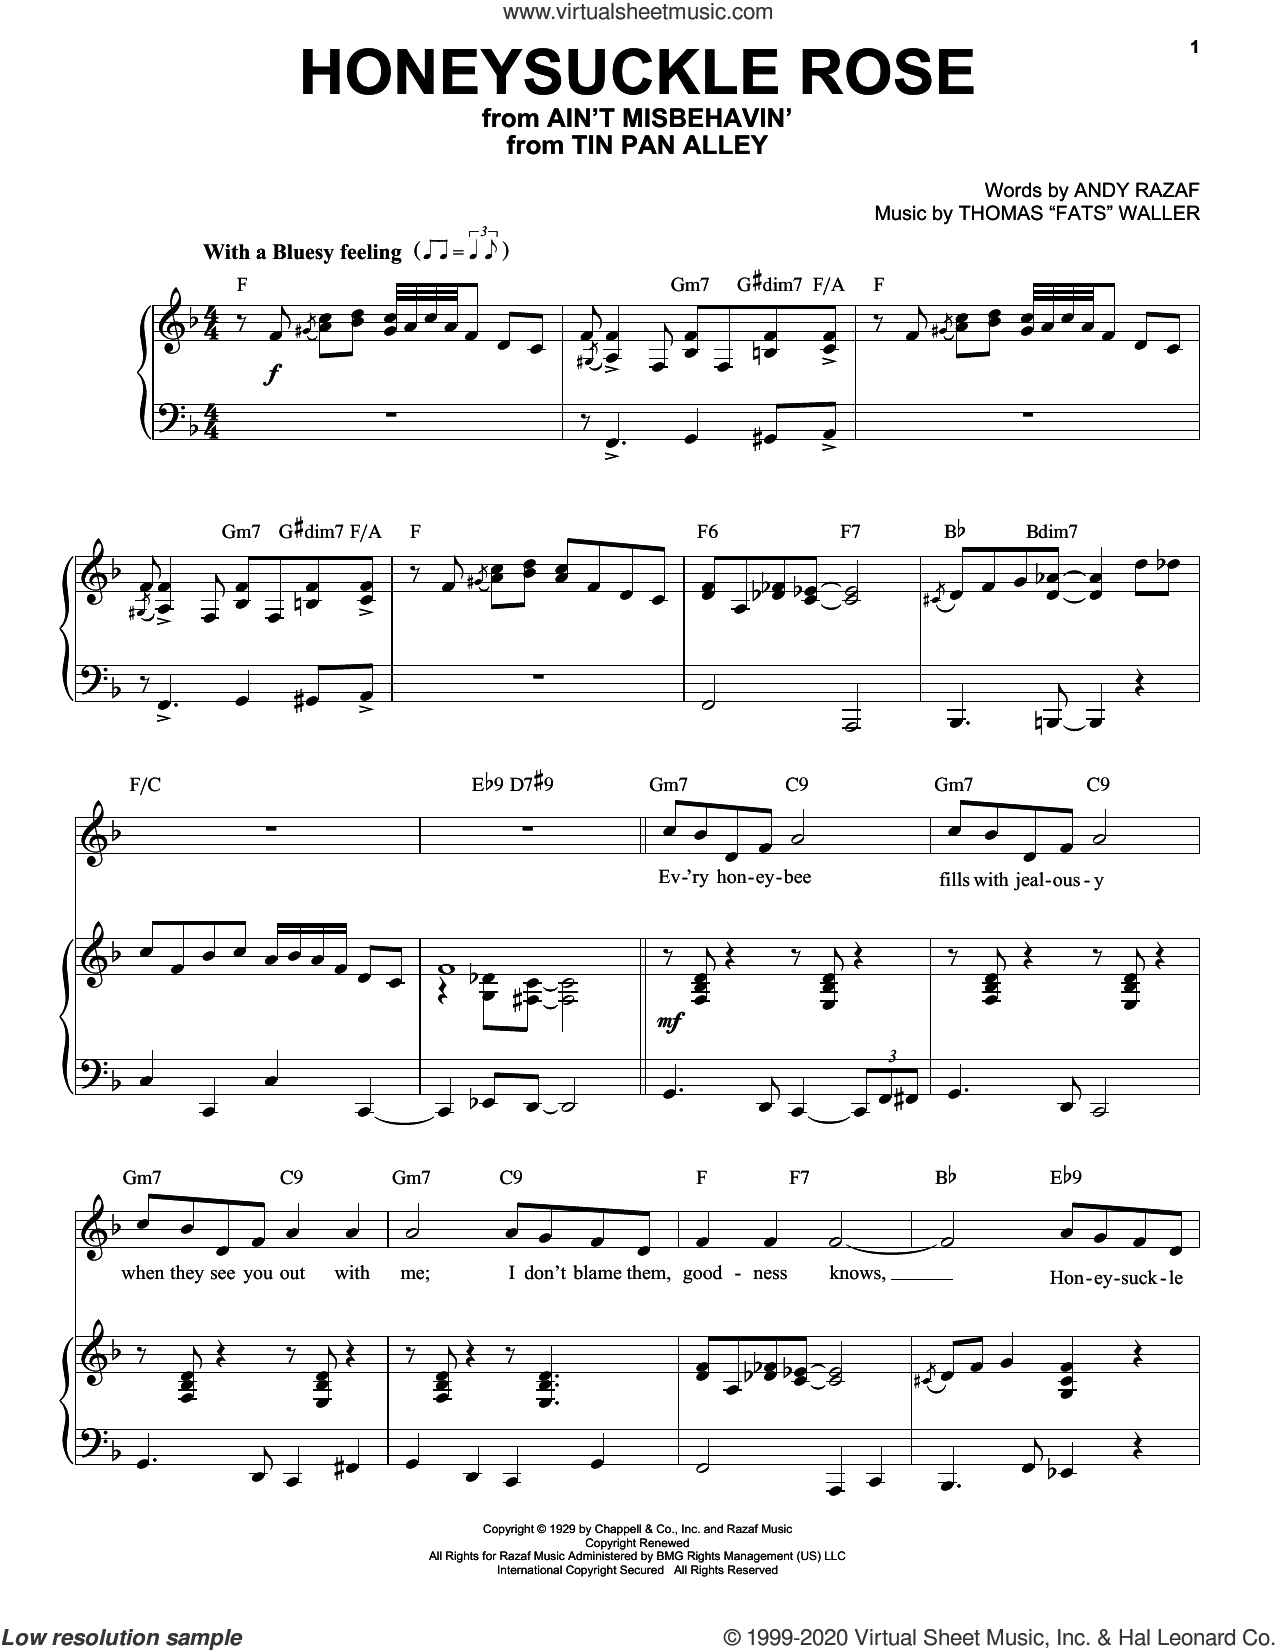 Honeysuckle Rose [Jazz version] (arr. Brent Edstrom) sheet music for voice and piano (High Voice) by Andy Razaf, Brent Edstrom, Andy Razaf and Thomas 'Fats' Waller and Thomas Waller, intermediate skill level